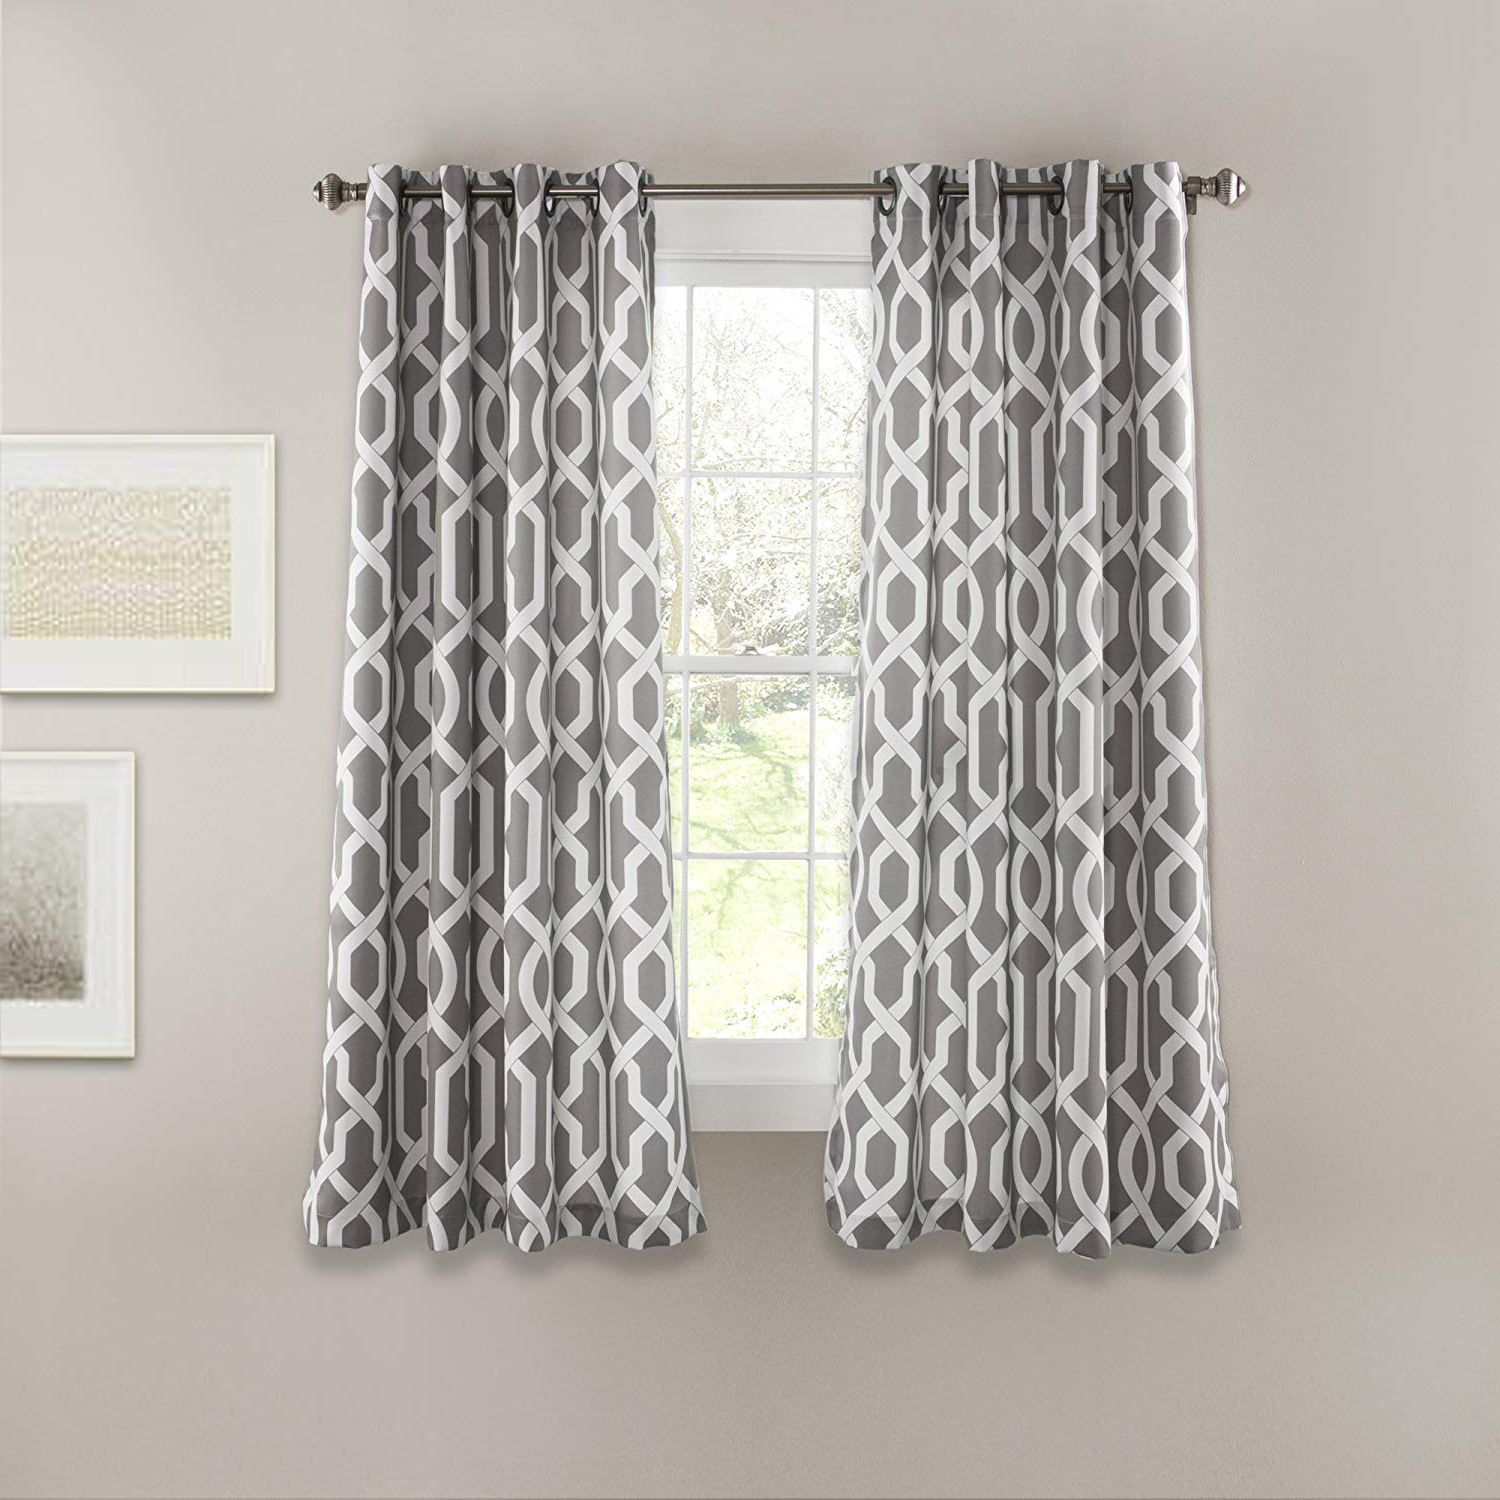 """Edward Moroccan Pattern Room Darkening Curtain Panel Pairs Within Well Liked Lush Decor Edward Trellis Curtains Room Darkening Gray Window Panel Set For Living, Dining, Bedroom (pair), 63"""" L (View 7 of 20)"""